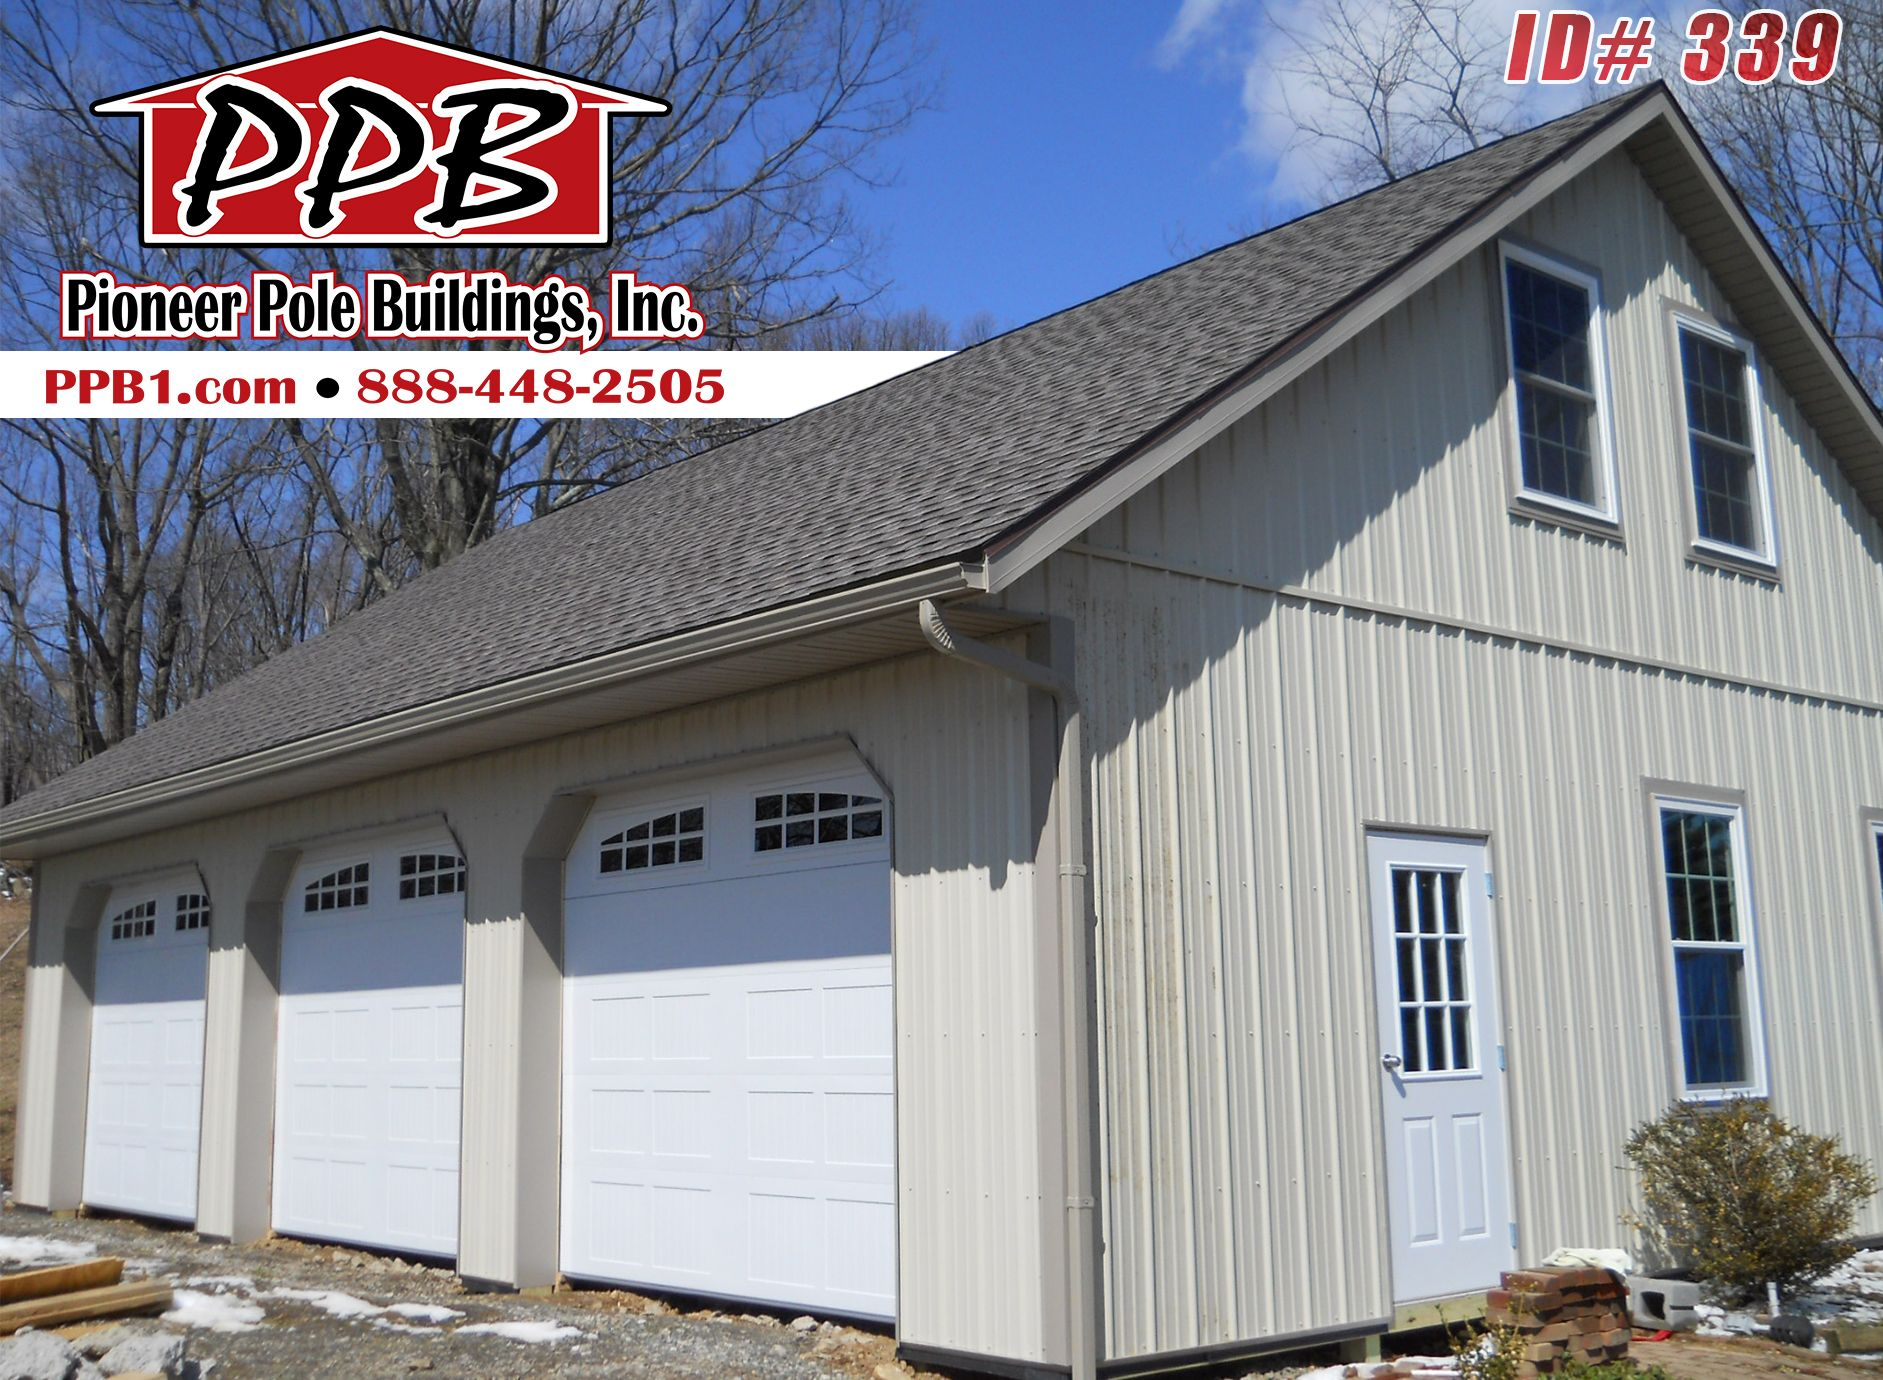 3 Car Garage With Attic Dimensions 30 W X 40 L X 10 H Id 339 30 Attic Trusses 2 On Center 8 12 Building A Shed Pole Buildings Residential Building